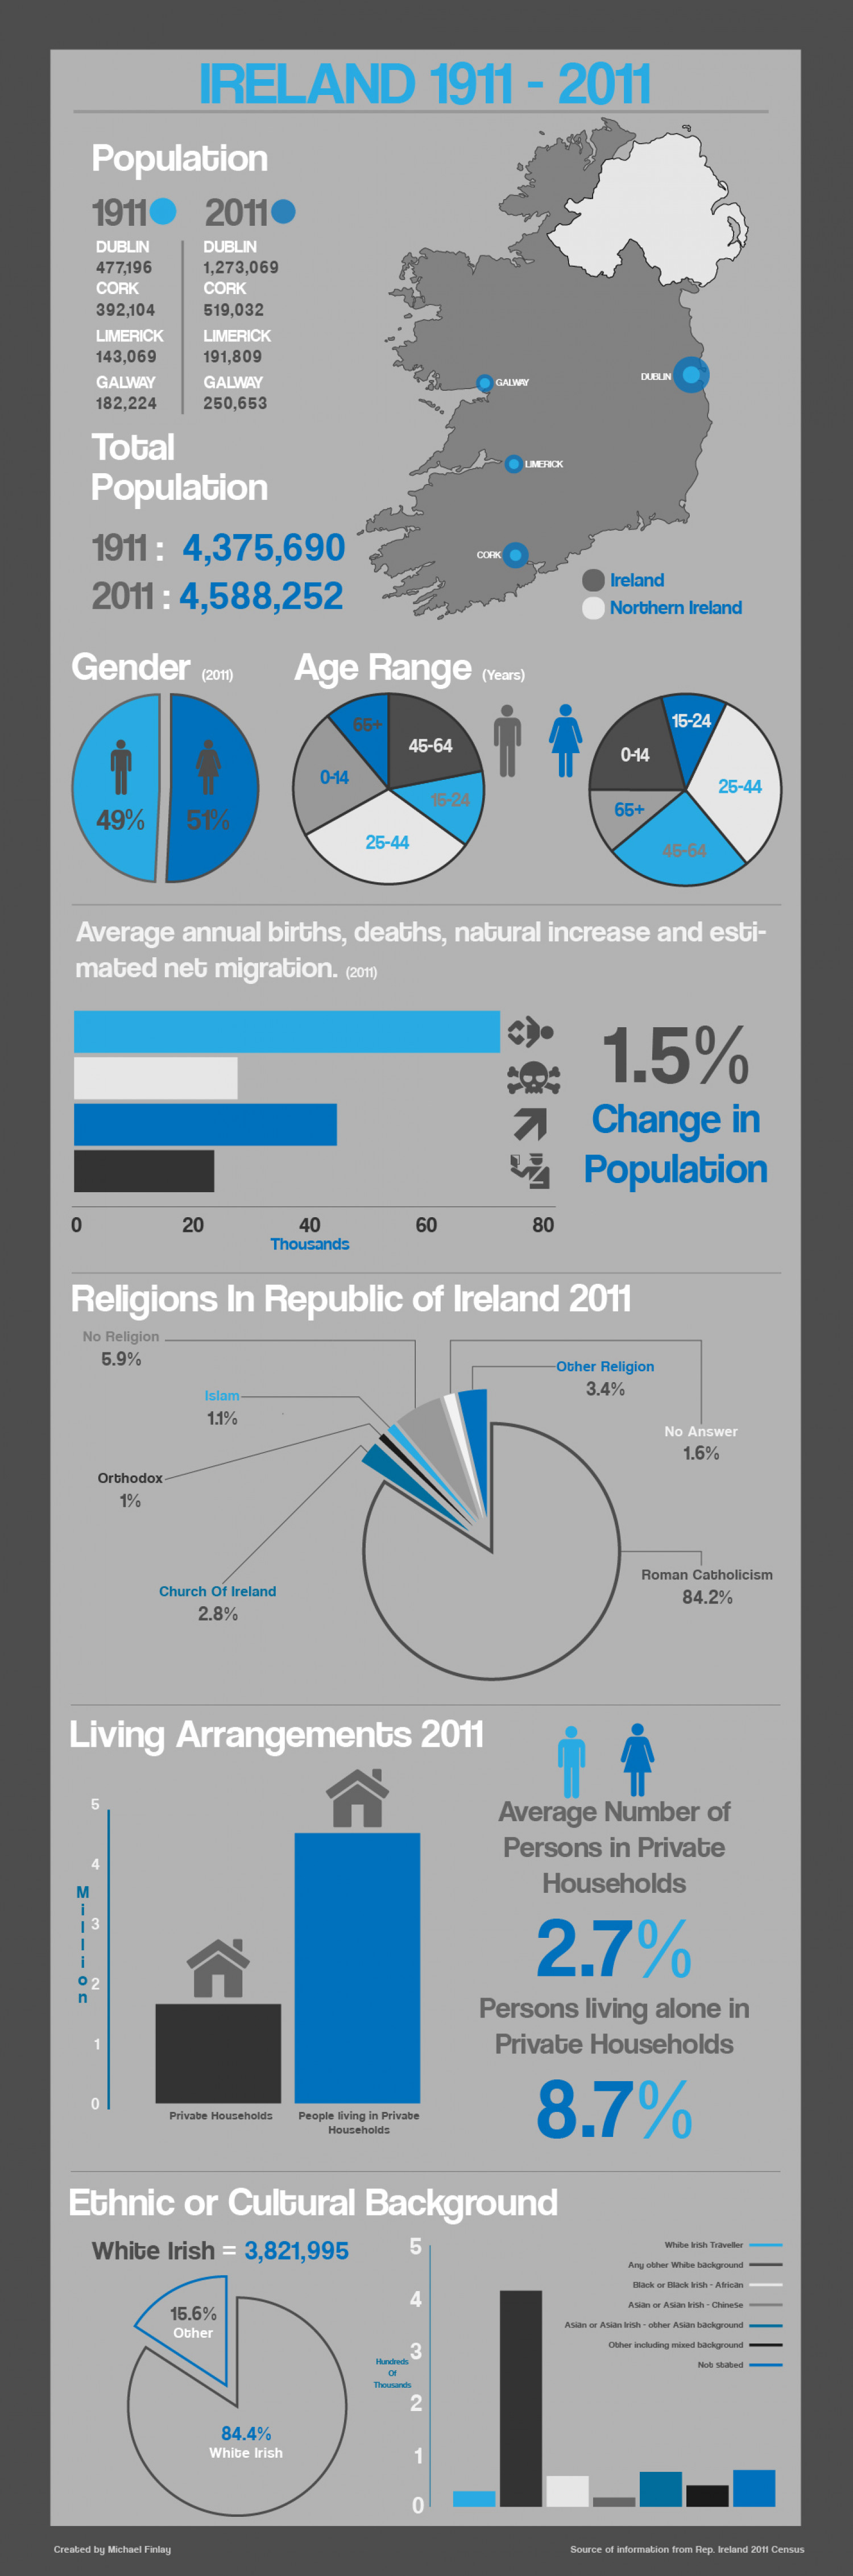 Ireland by numbers Infographic